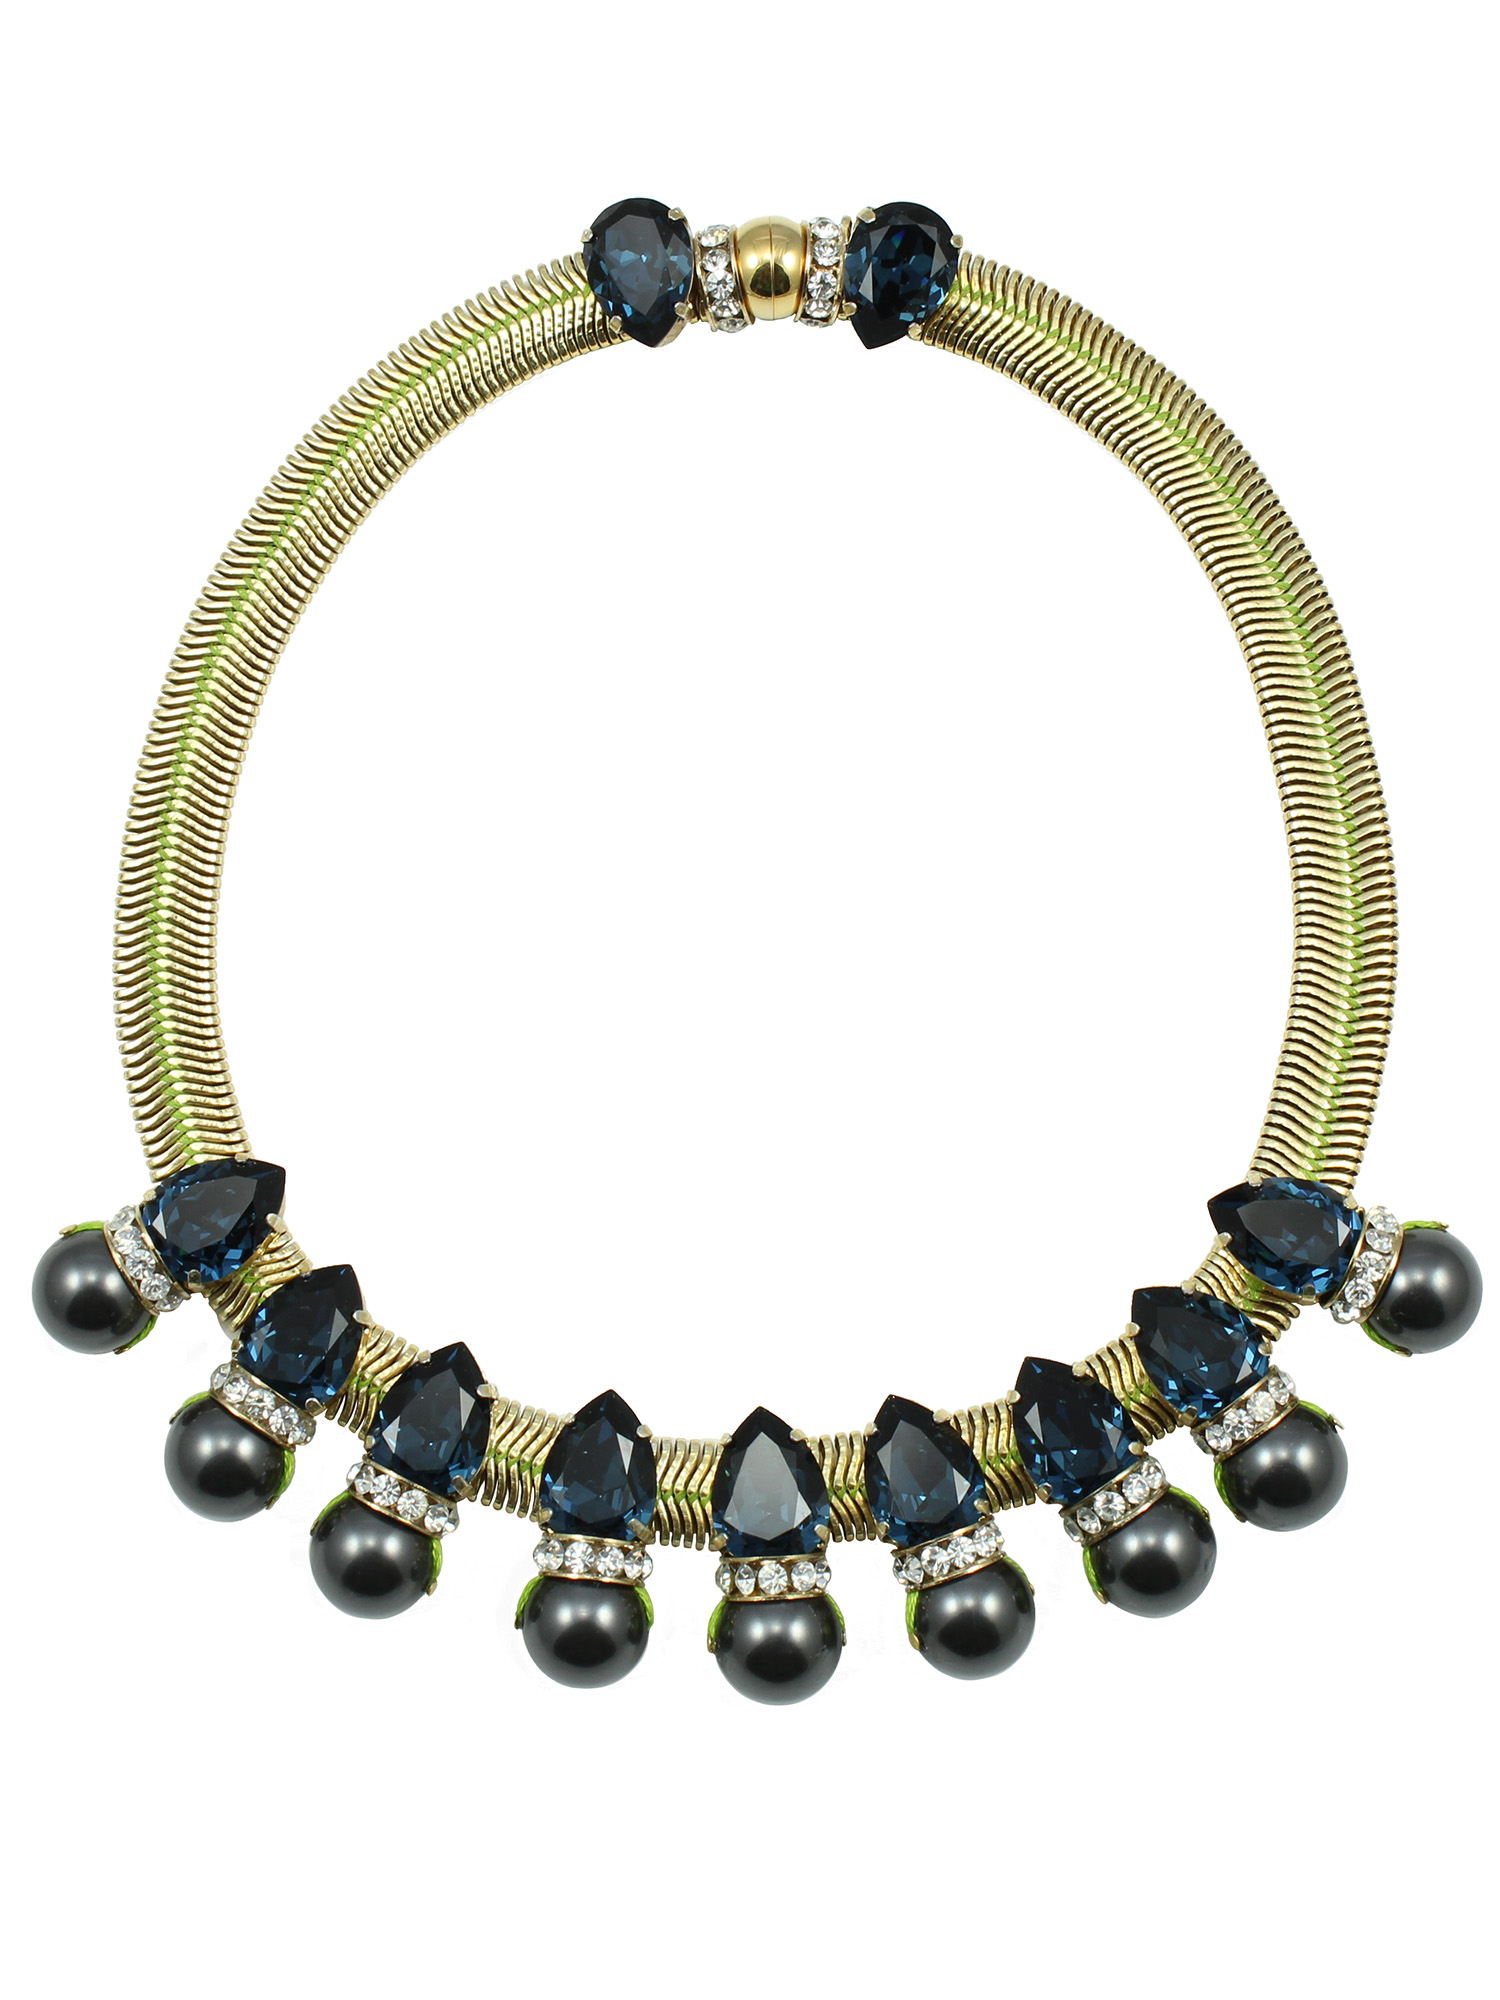 171N-BG Aragon Necklace - Blue_Grey.jpg